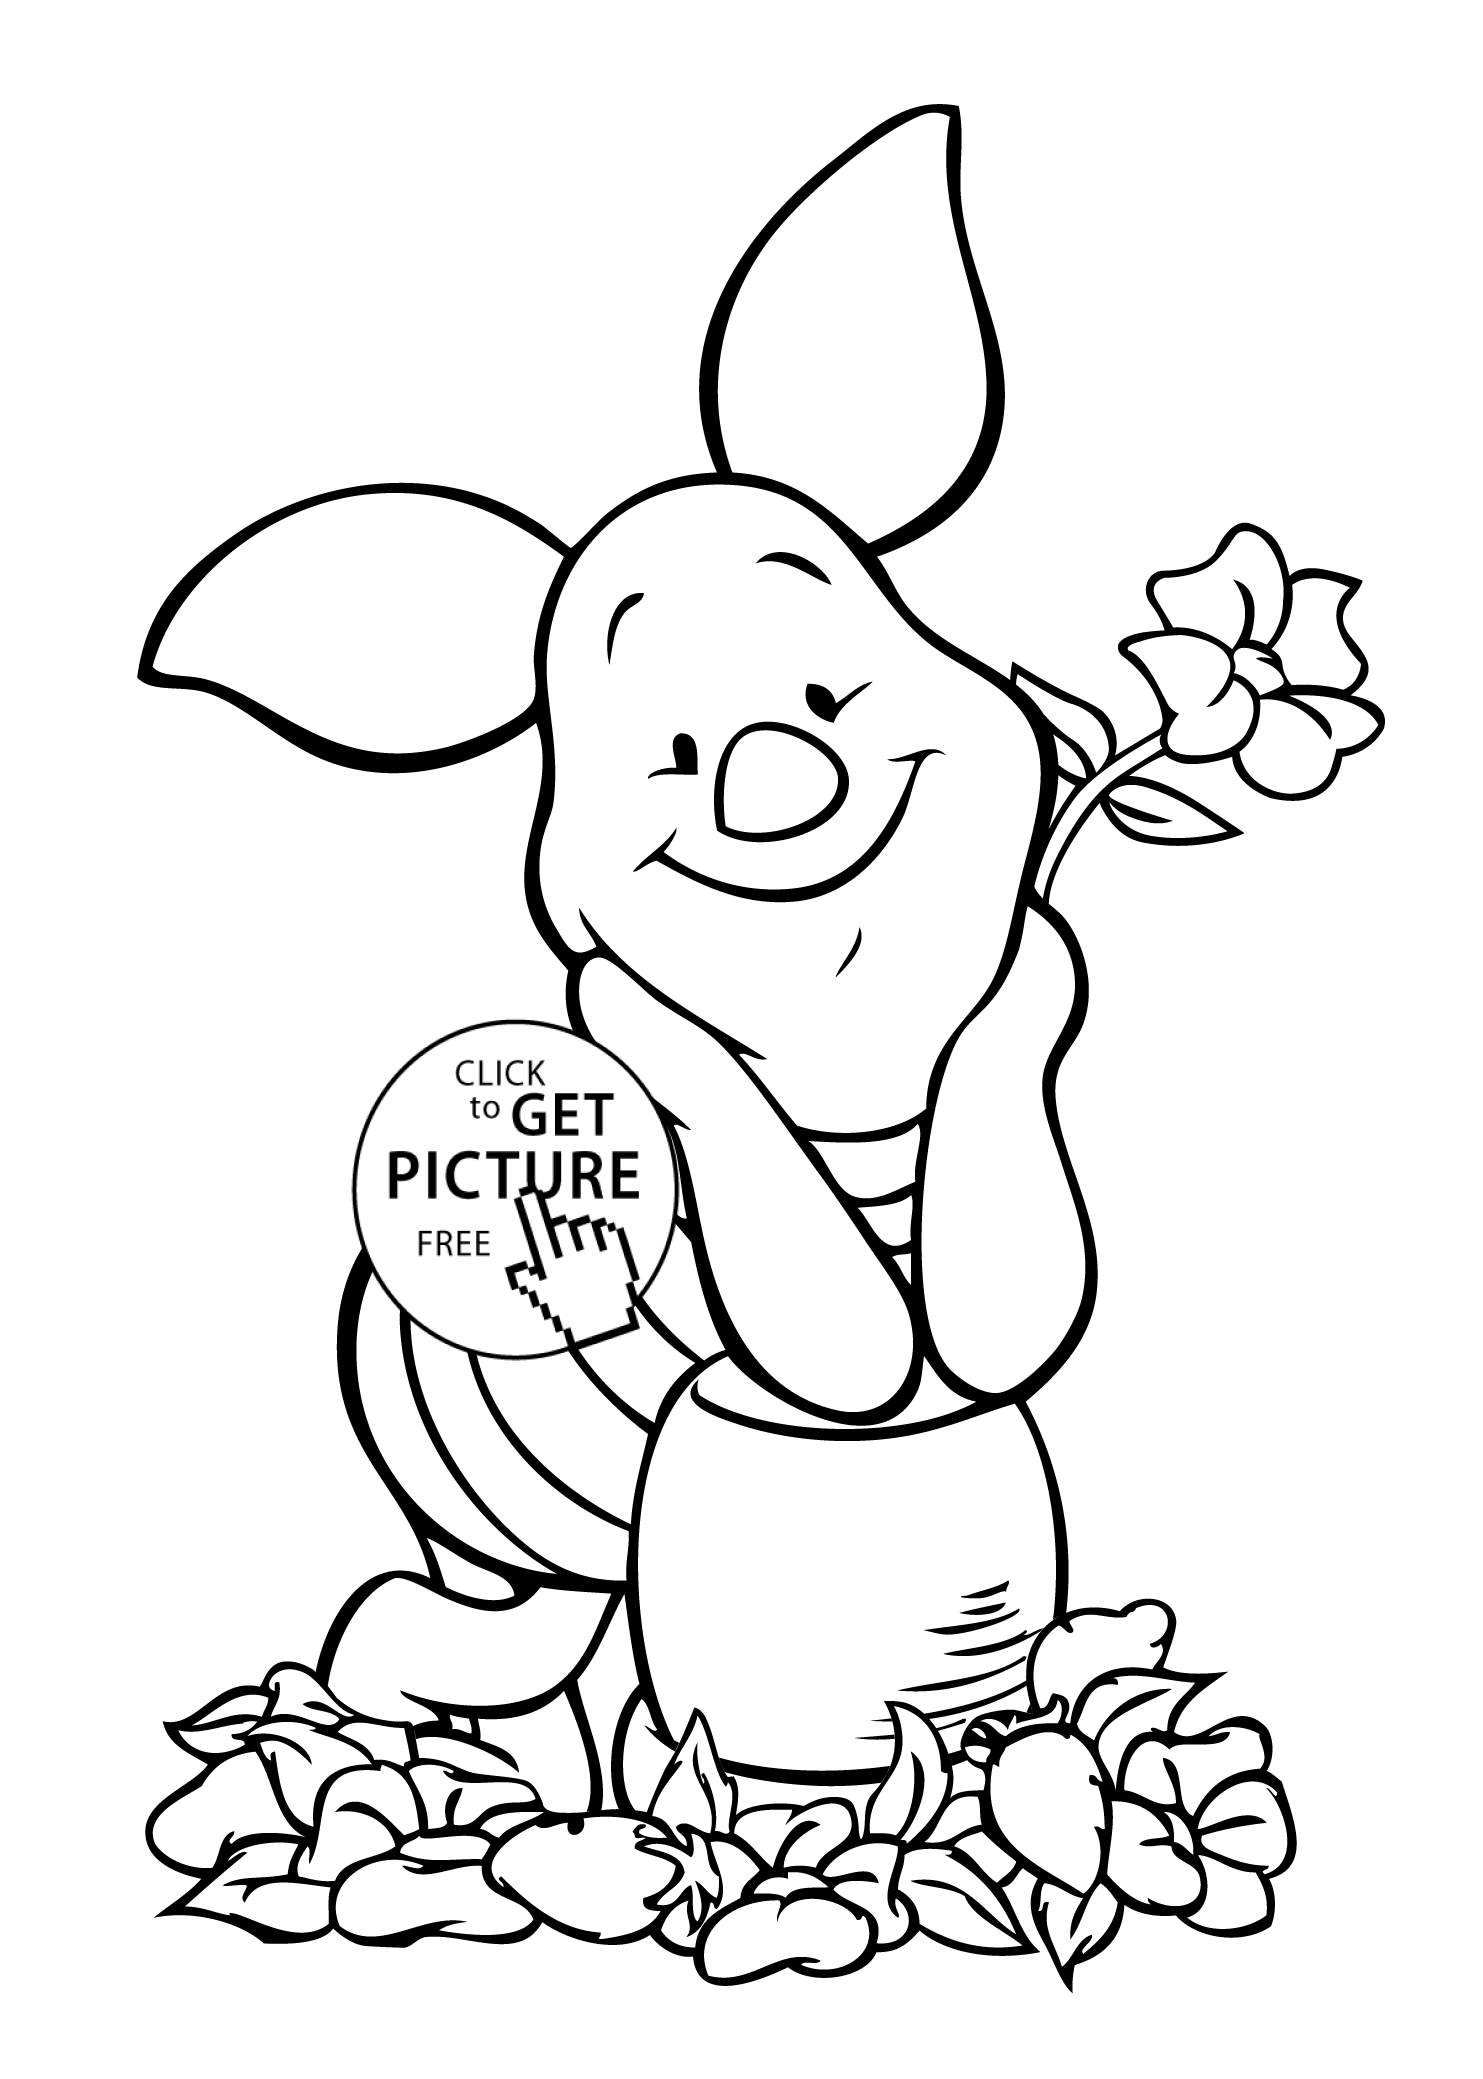 Winnie Pooh piglet coloring page for kids free printable | coloing ...